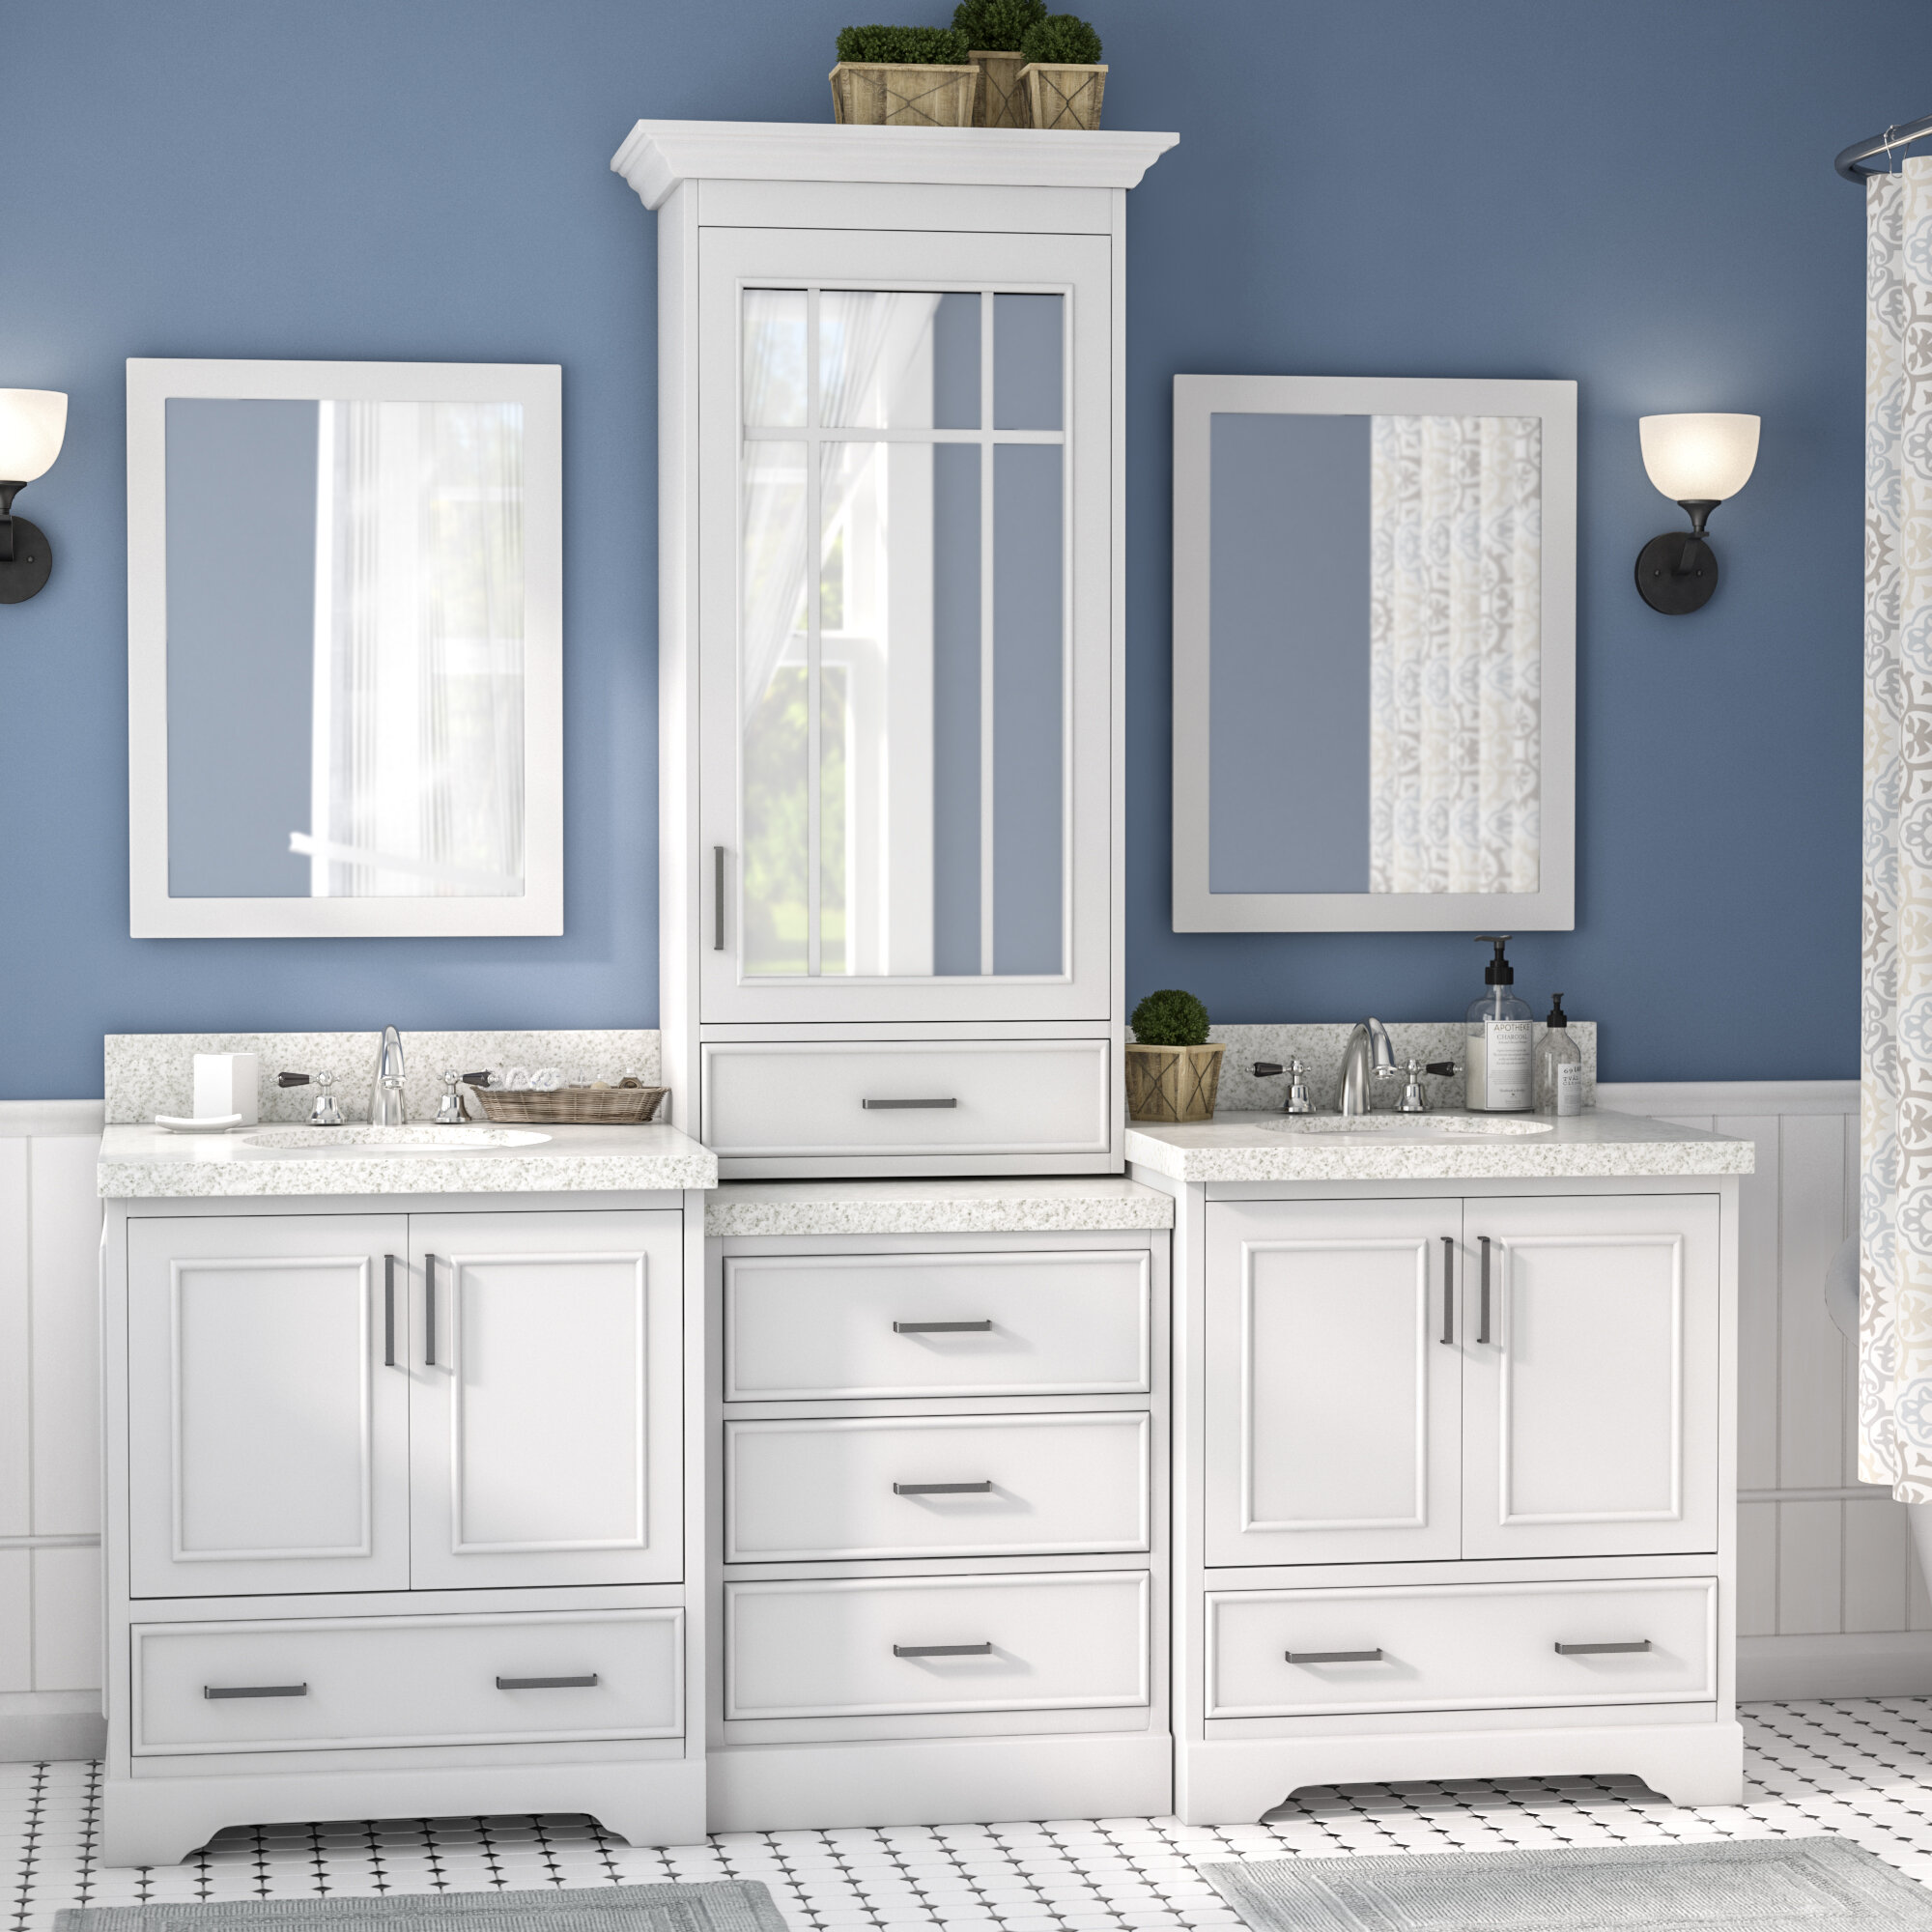 Darby Home Co Geraldina 85 Double Sink